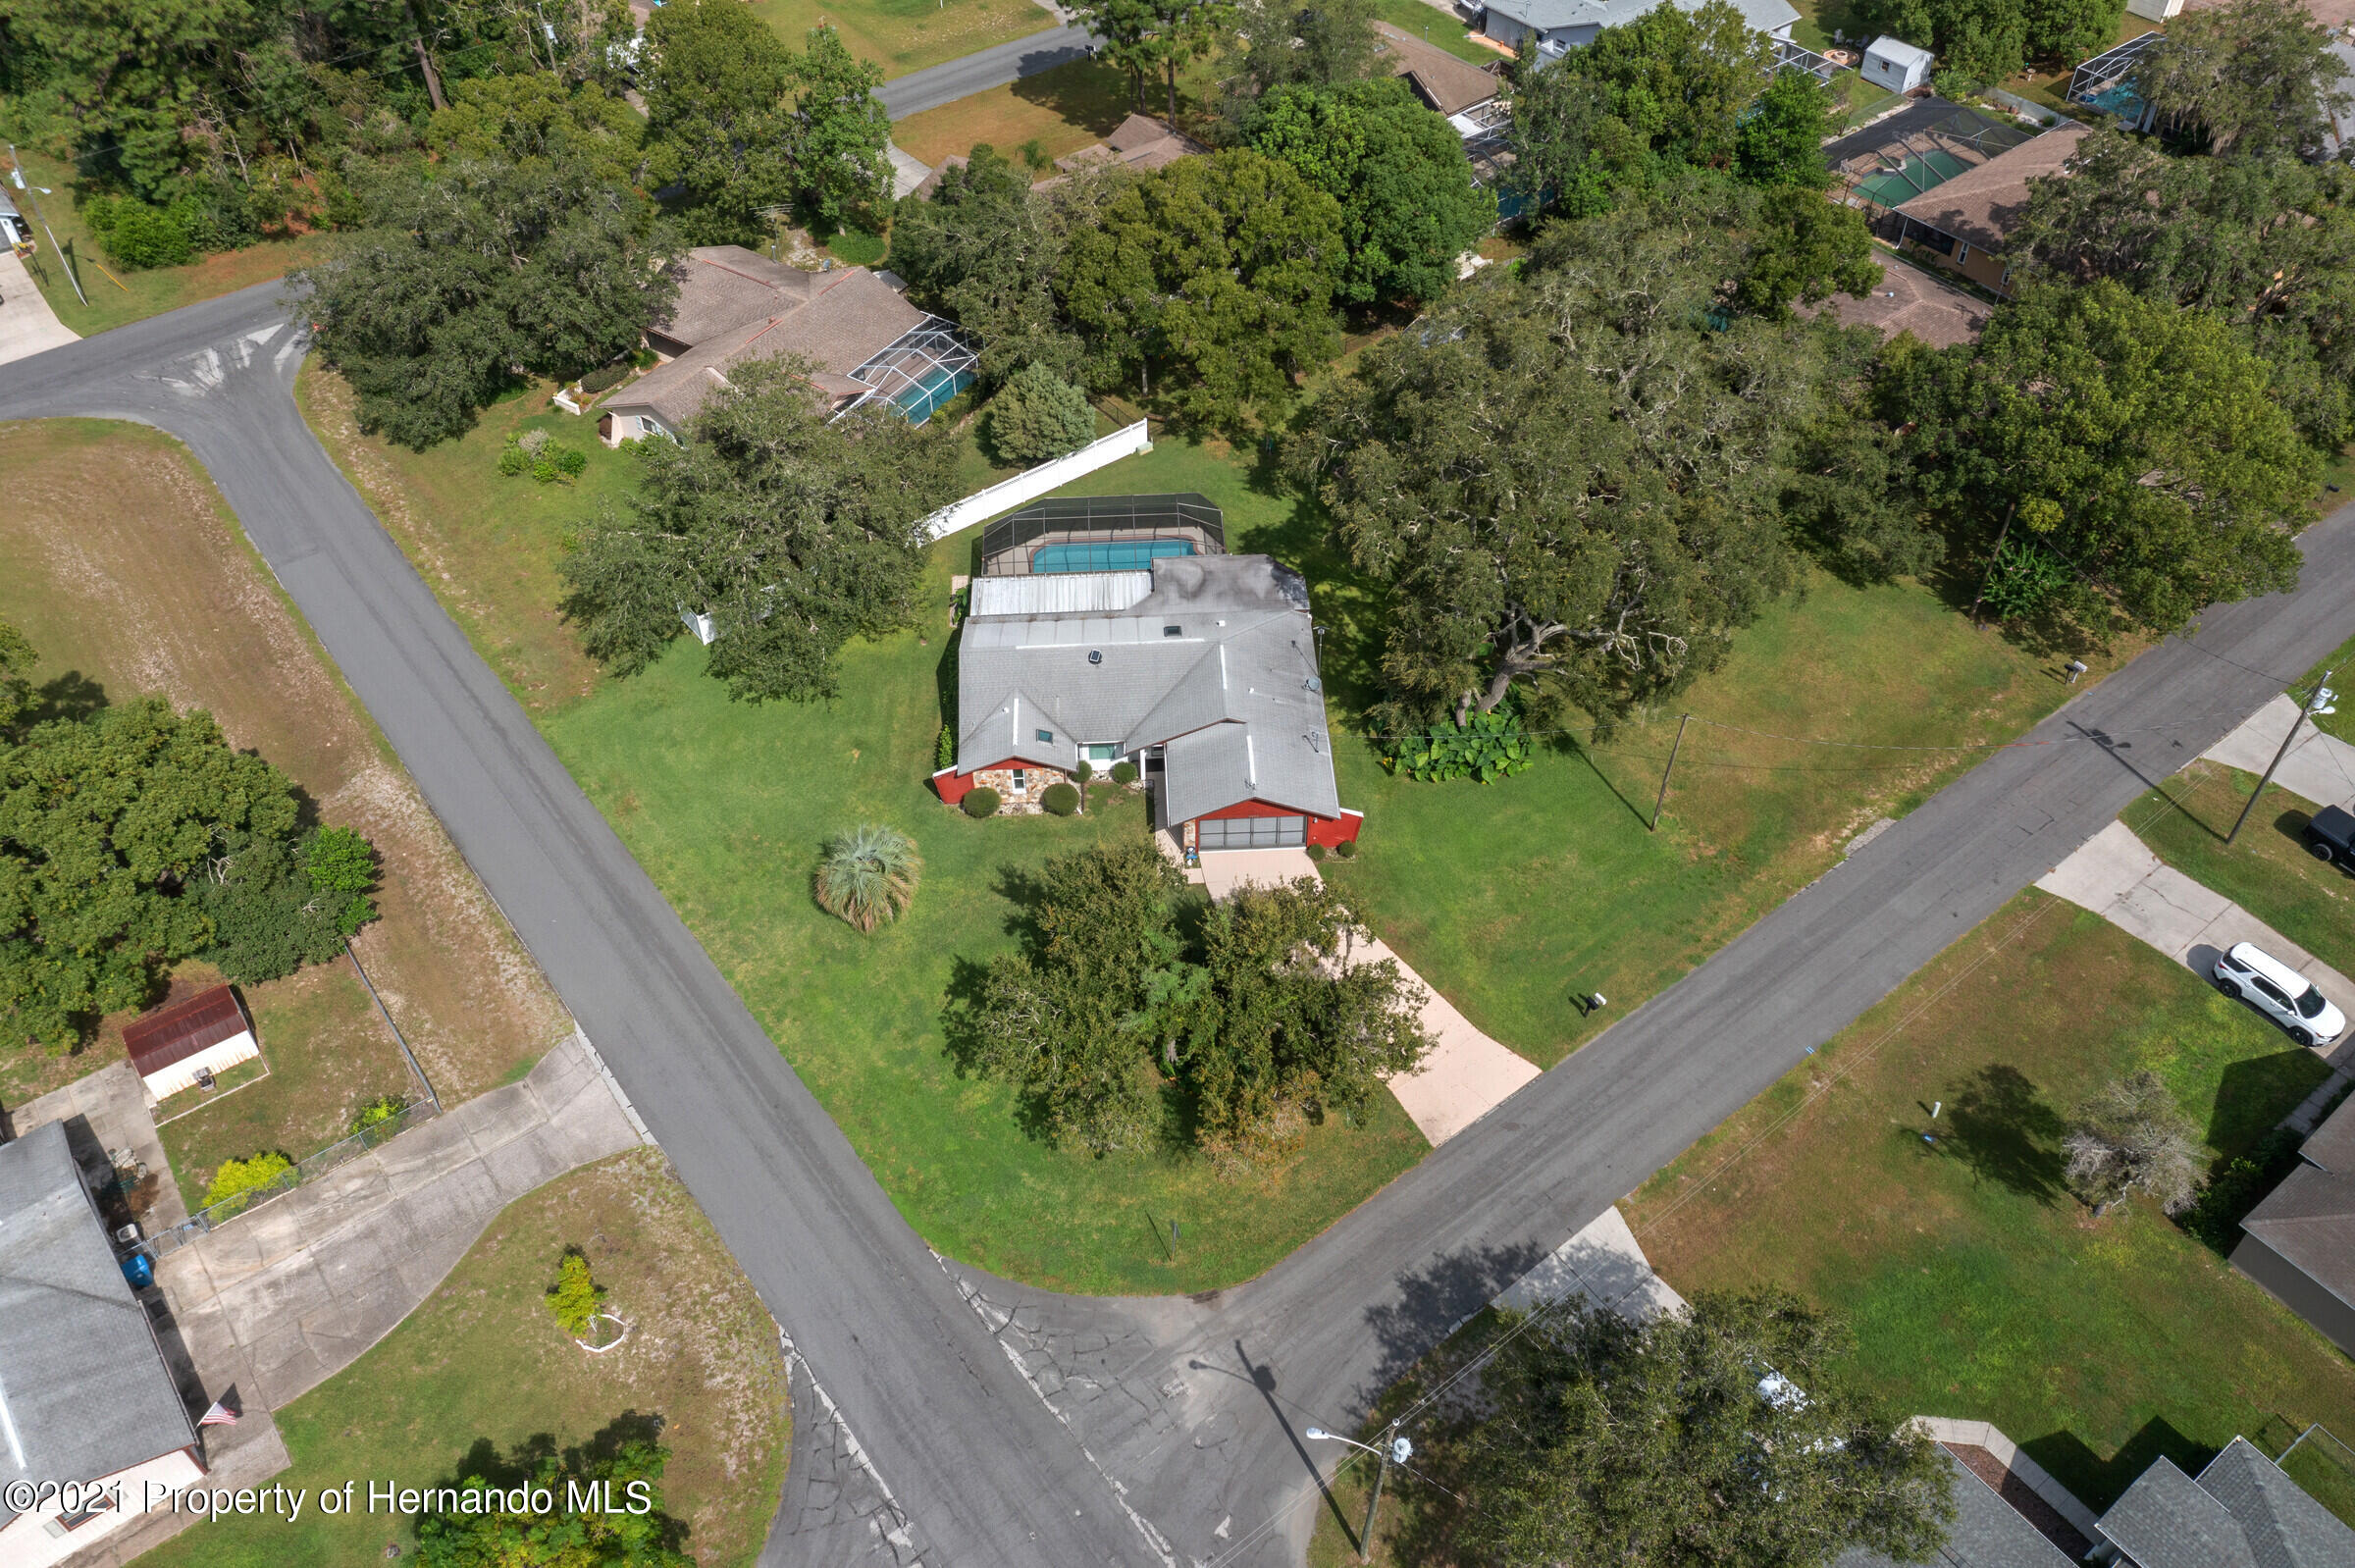 Image 2 of 21 For 5325 Abagail Drive